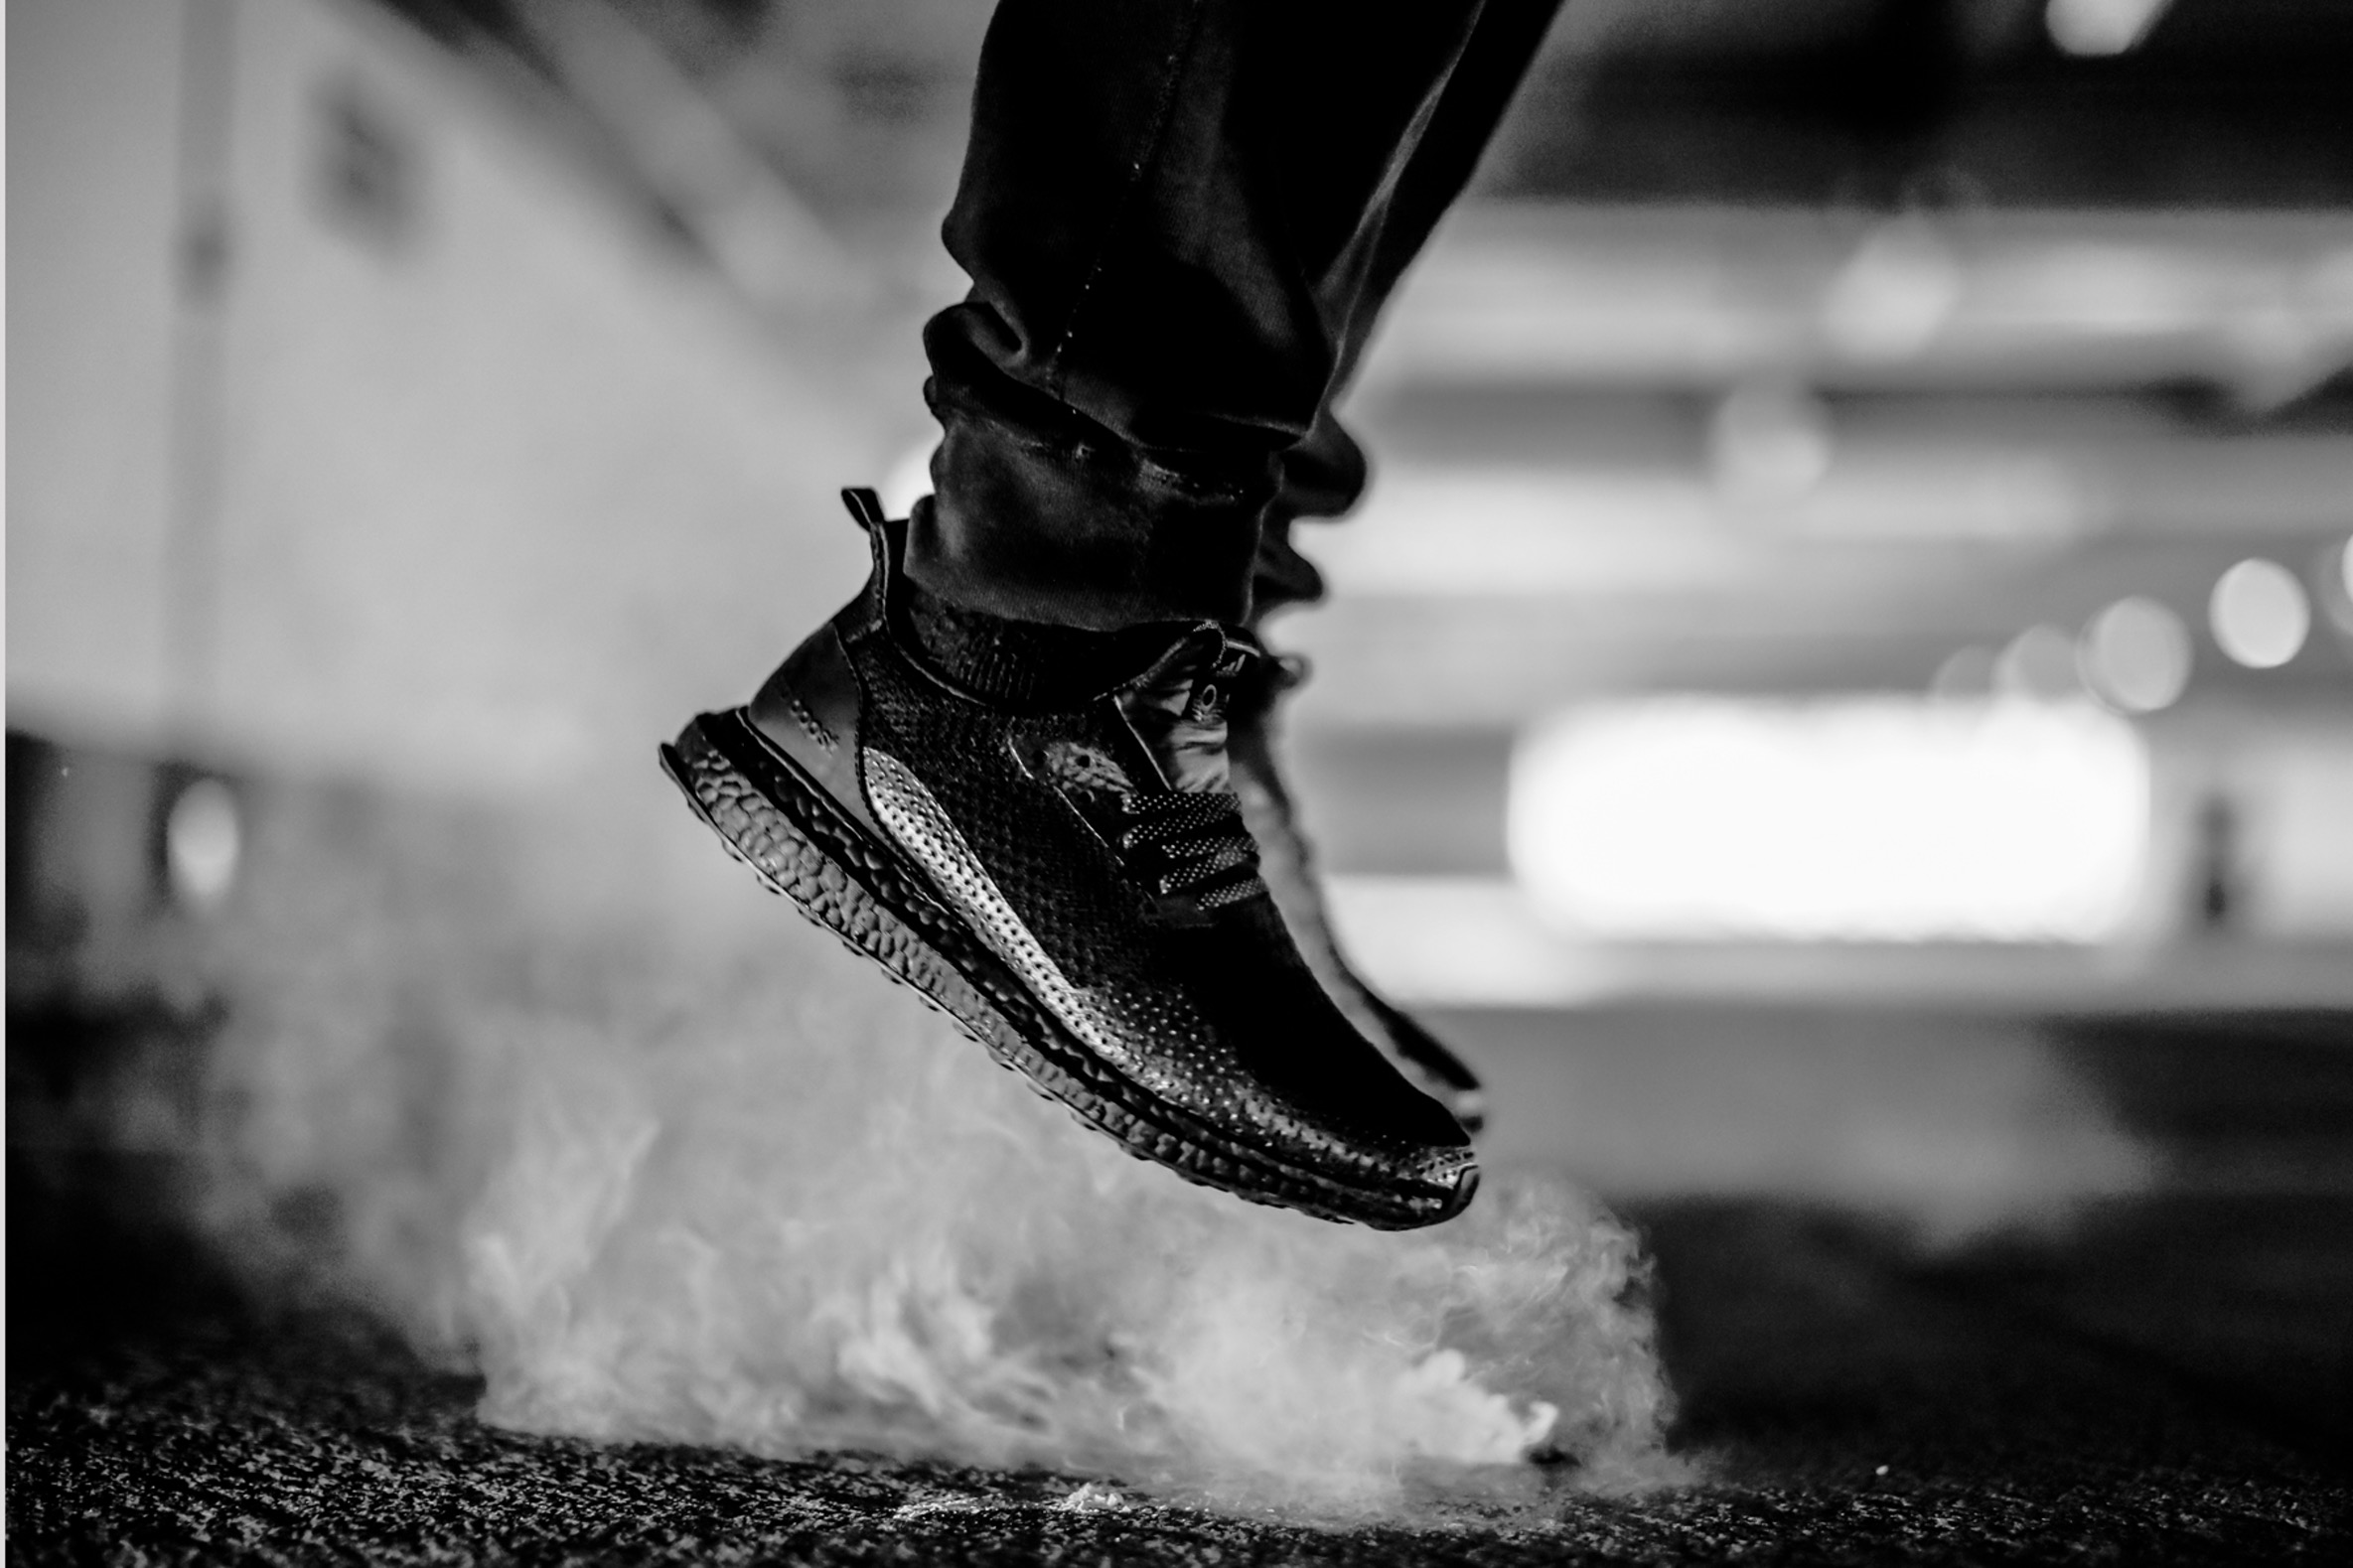 http---hypebeast.com-image-2017-04-haven-adidas-consortium-ultraboost-triple-black-closer-look-3